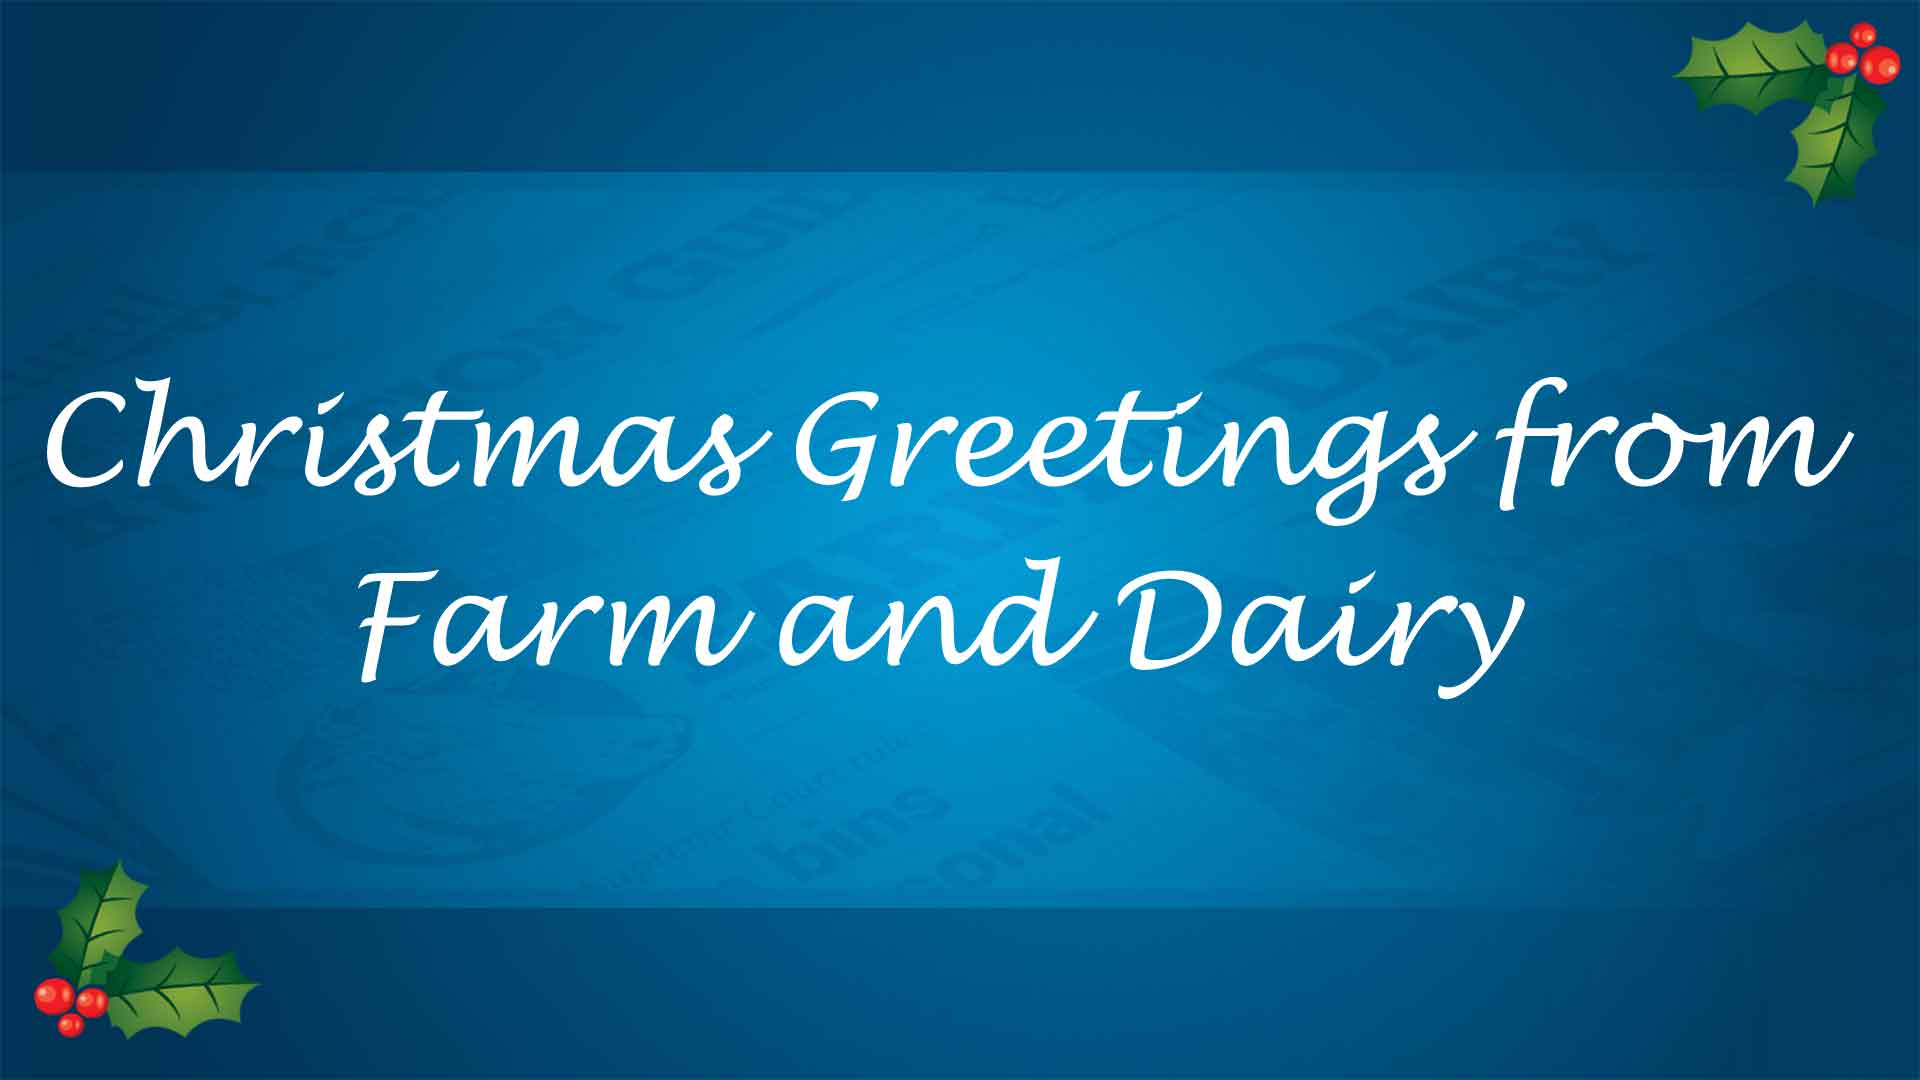 Christmas Greetings from Farm and Dairy